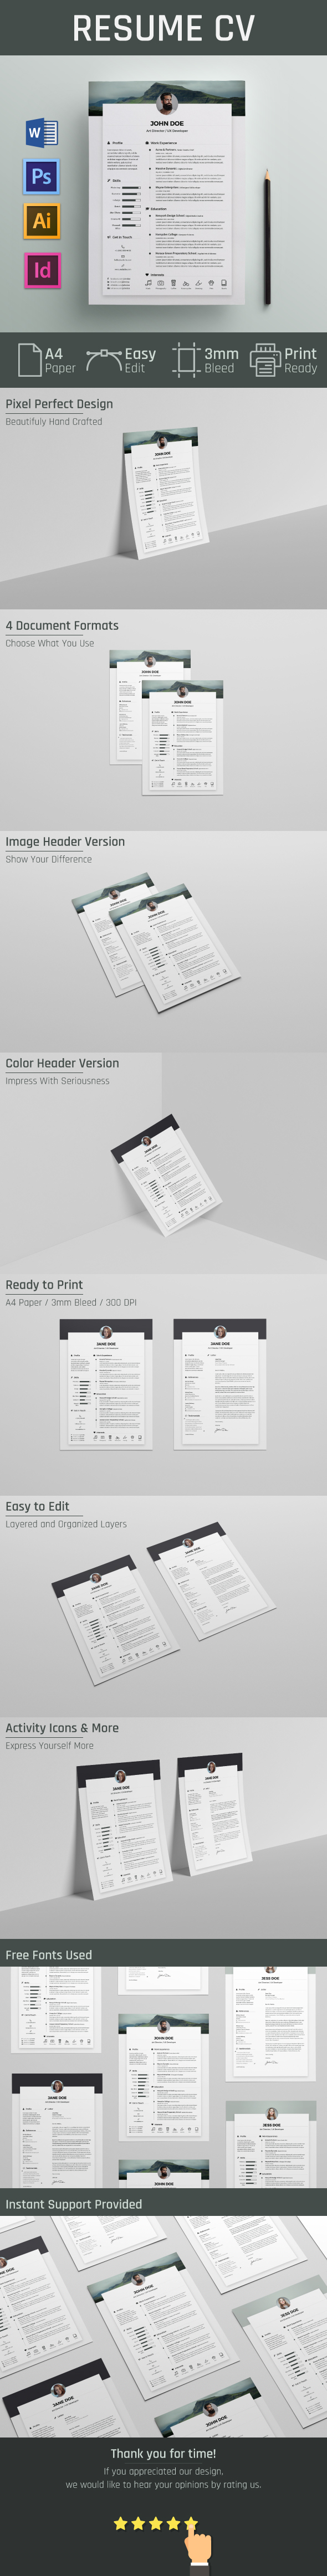 Free resume cv template on behance pronofoot35fo Images